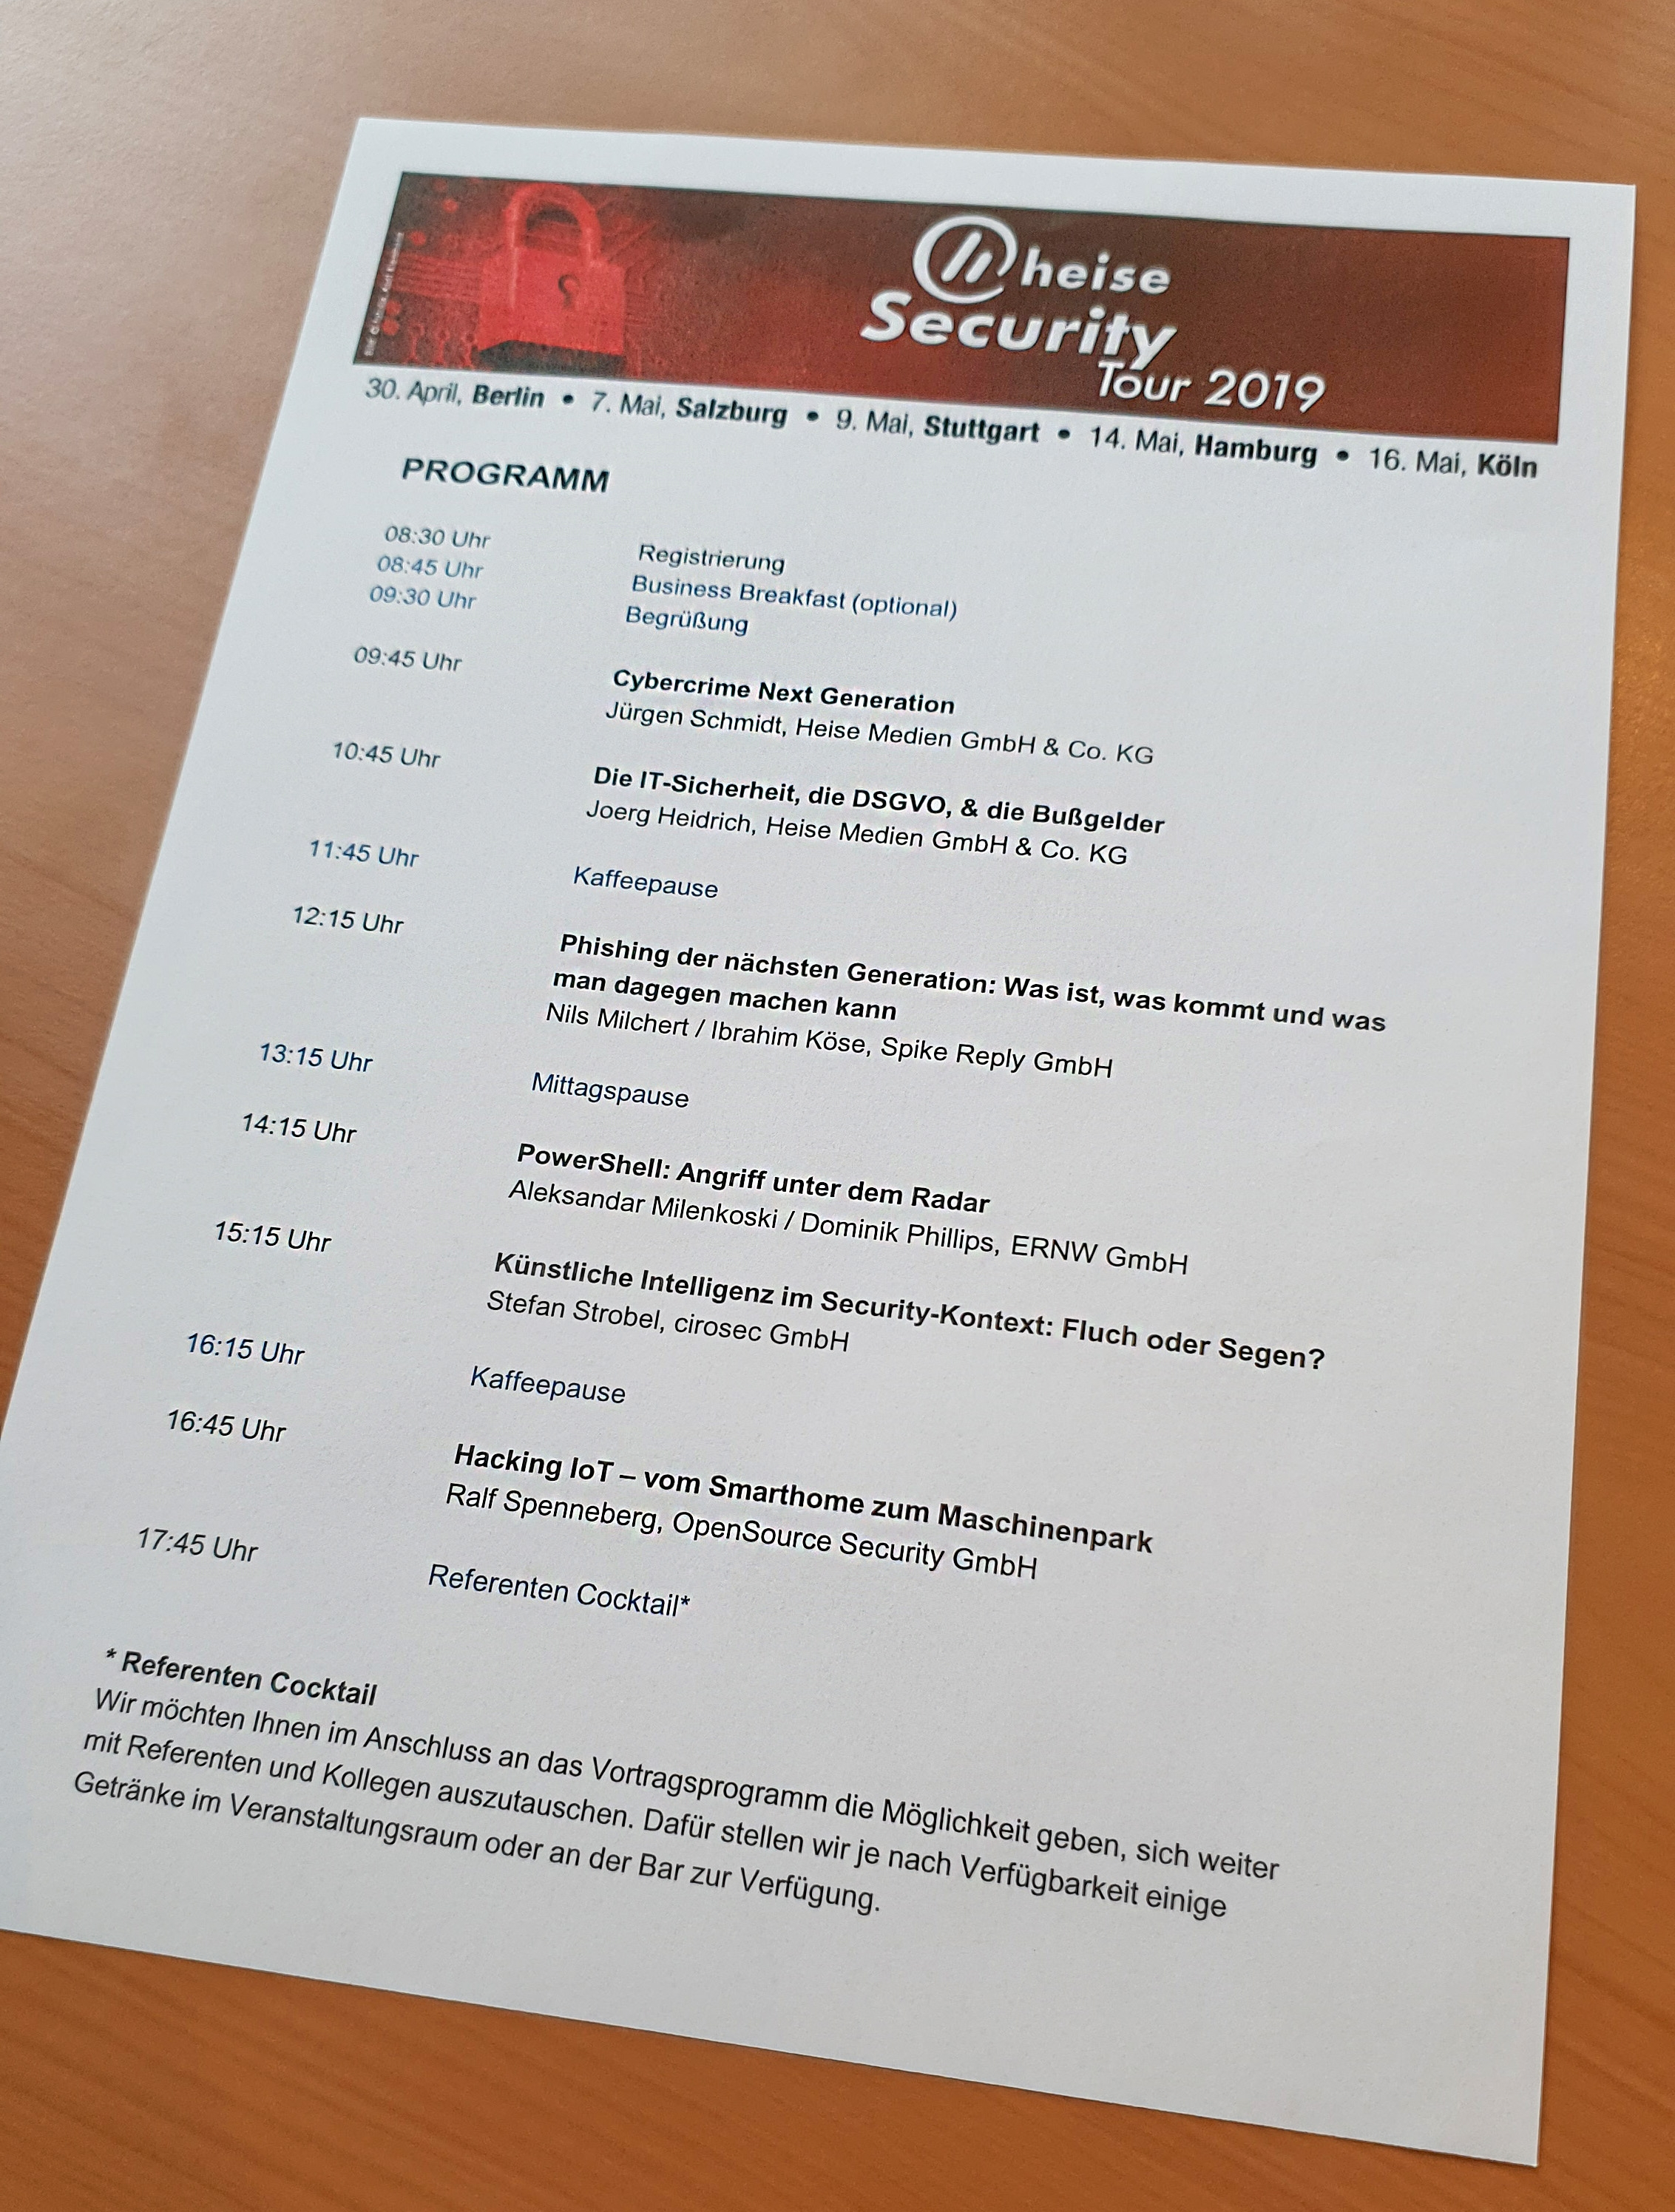 Heise Security Tour 2019 - Verantsaltungsprogramm